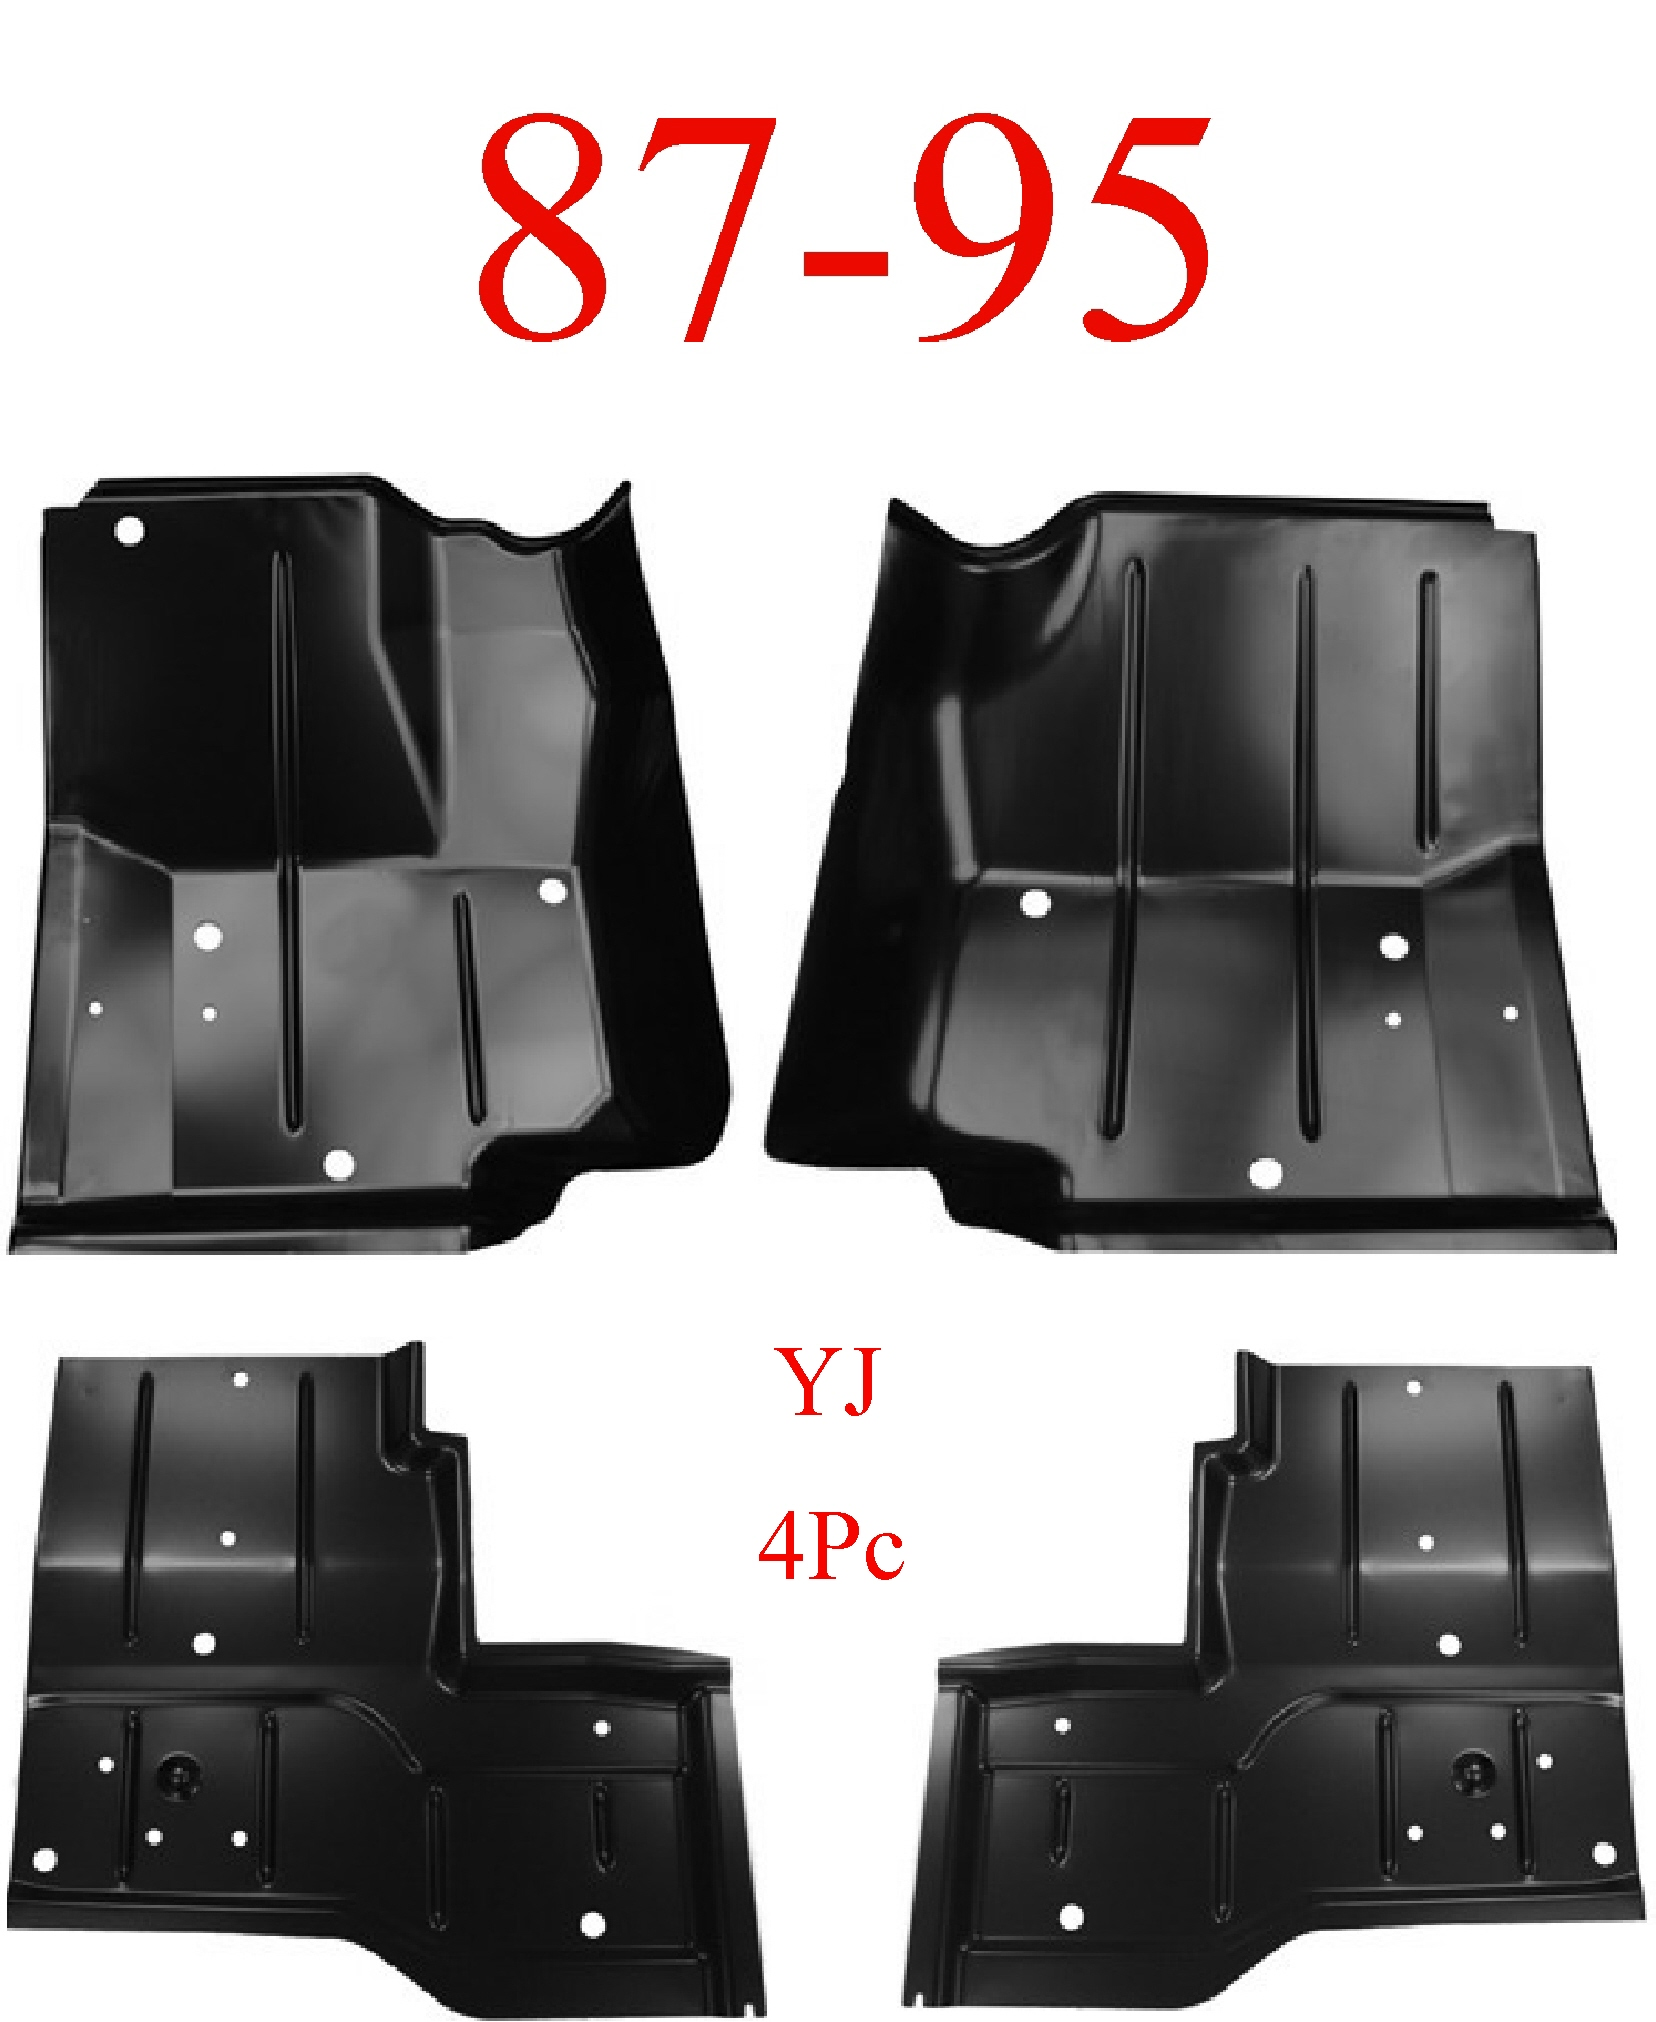 87-95 Wrangler YJ 4pc Floor Pan Set